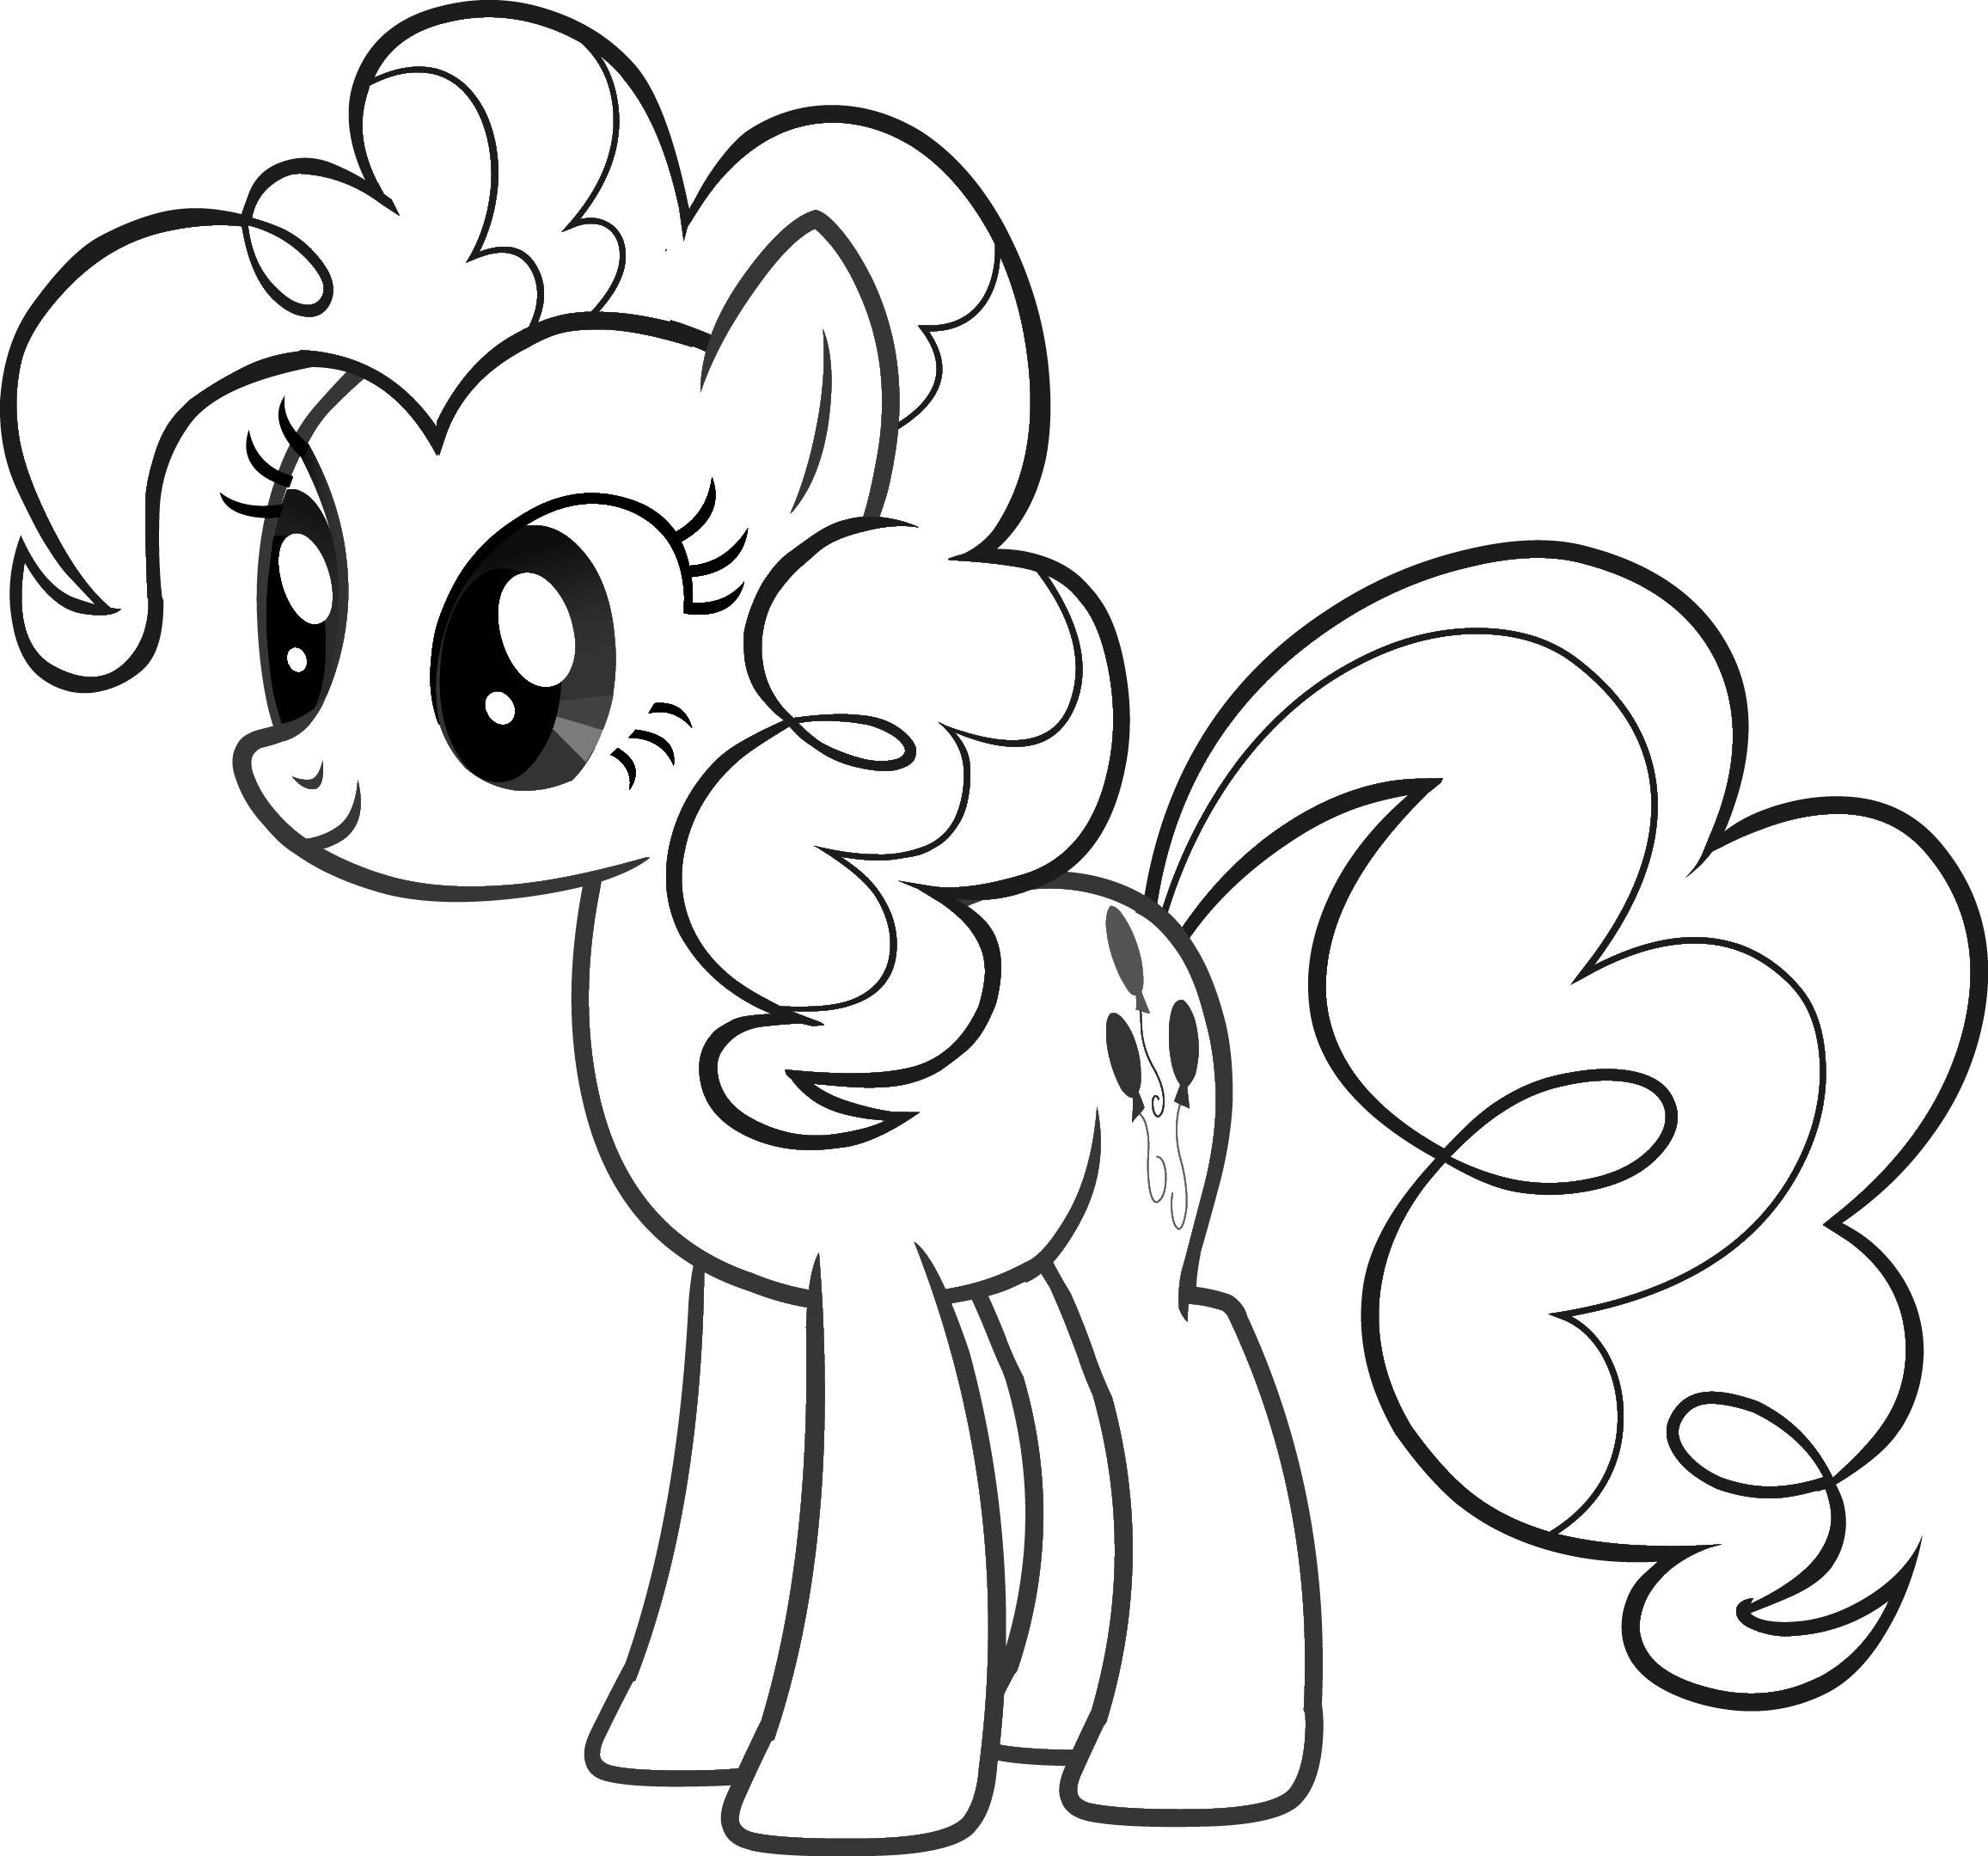 Cute drawing ideas for kids at getdrawings free for personal 2313x2159 coloring pages printable kids coloring pages free printable for thecheapjerseys Image collections